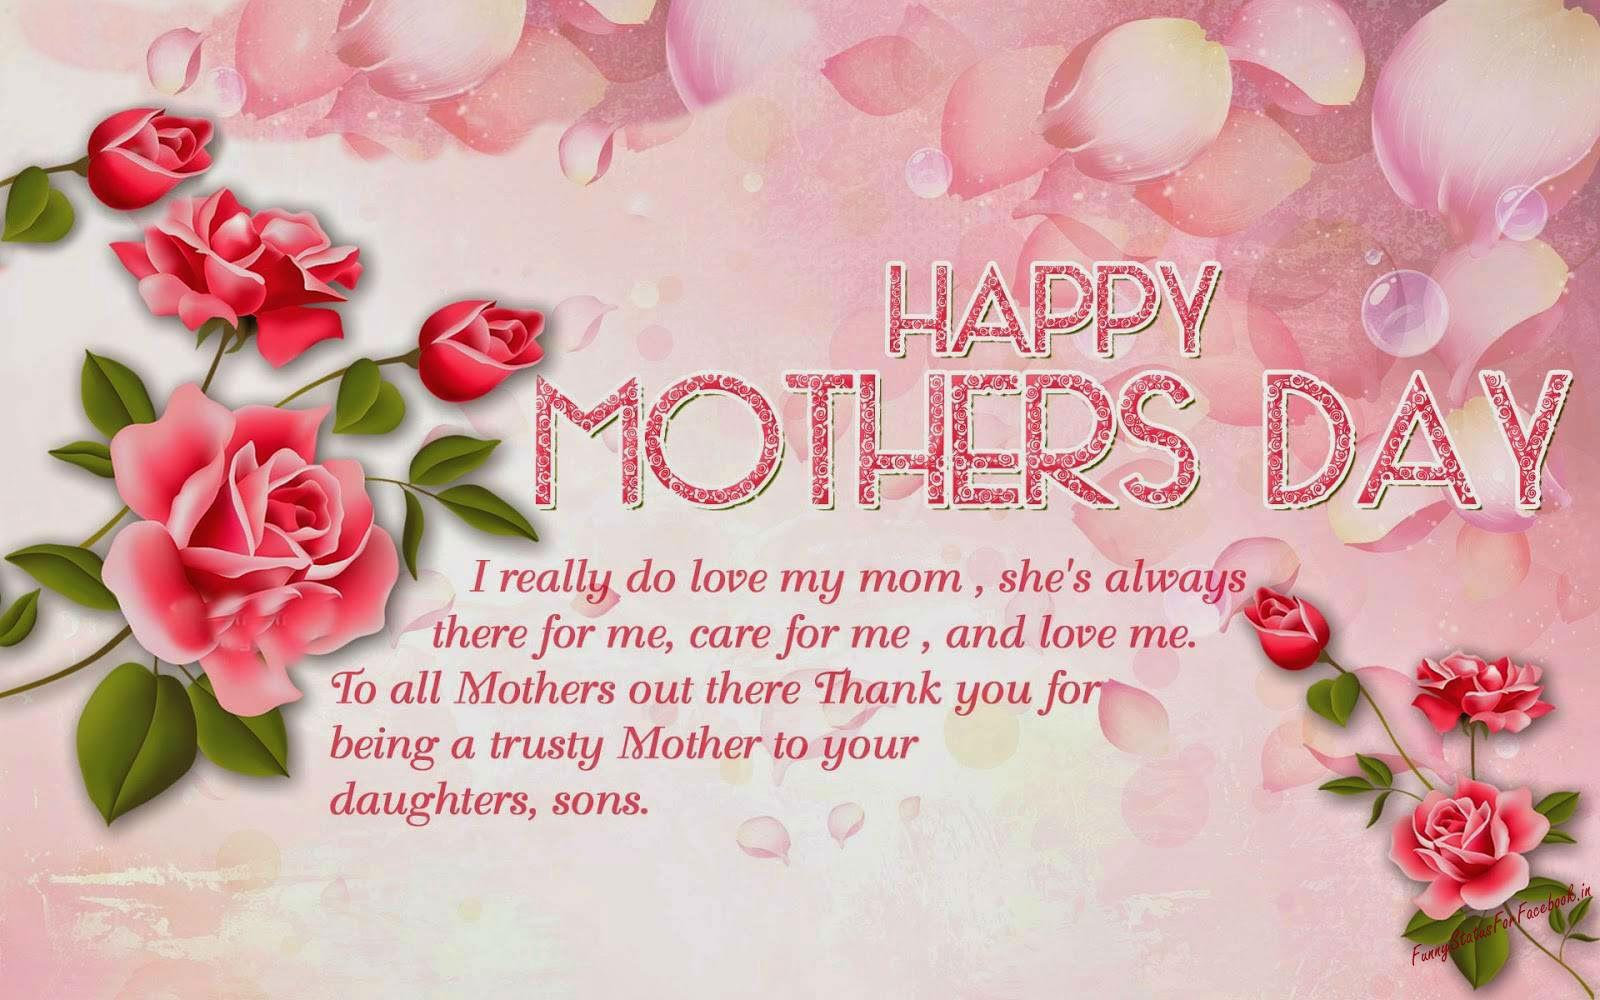 Cute mothers day 2017 sayings blessings messages wishes from for that people generally use to search for cute mother day saying from daughters mothers day blessings from daughter mothers day sms from daughter kristyandbryce Choice Image